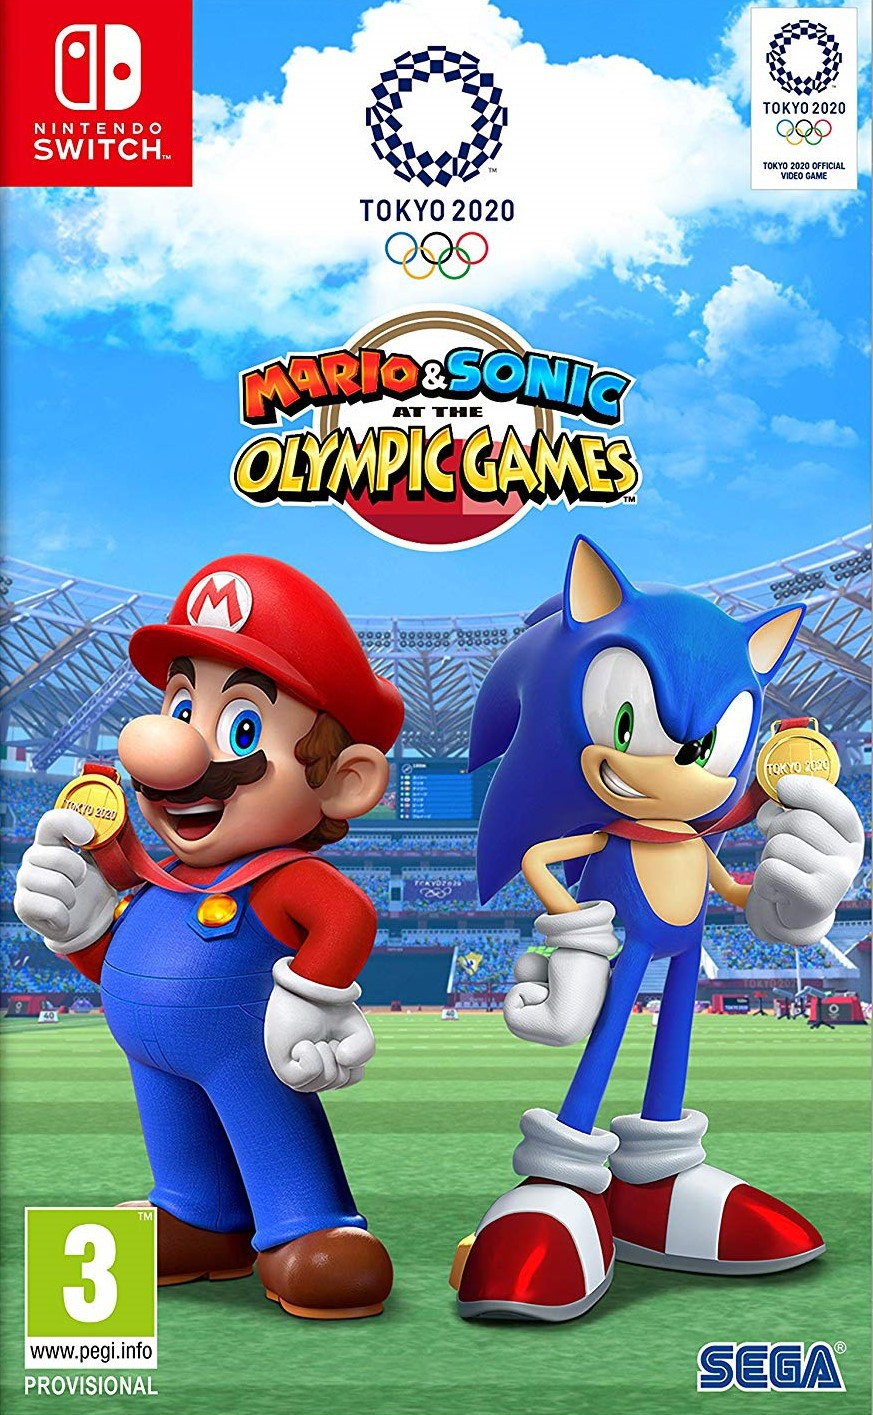 New Nintendo Switch Games 2020.Mario Sonic At The Olympic Games Tokyo 2020